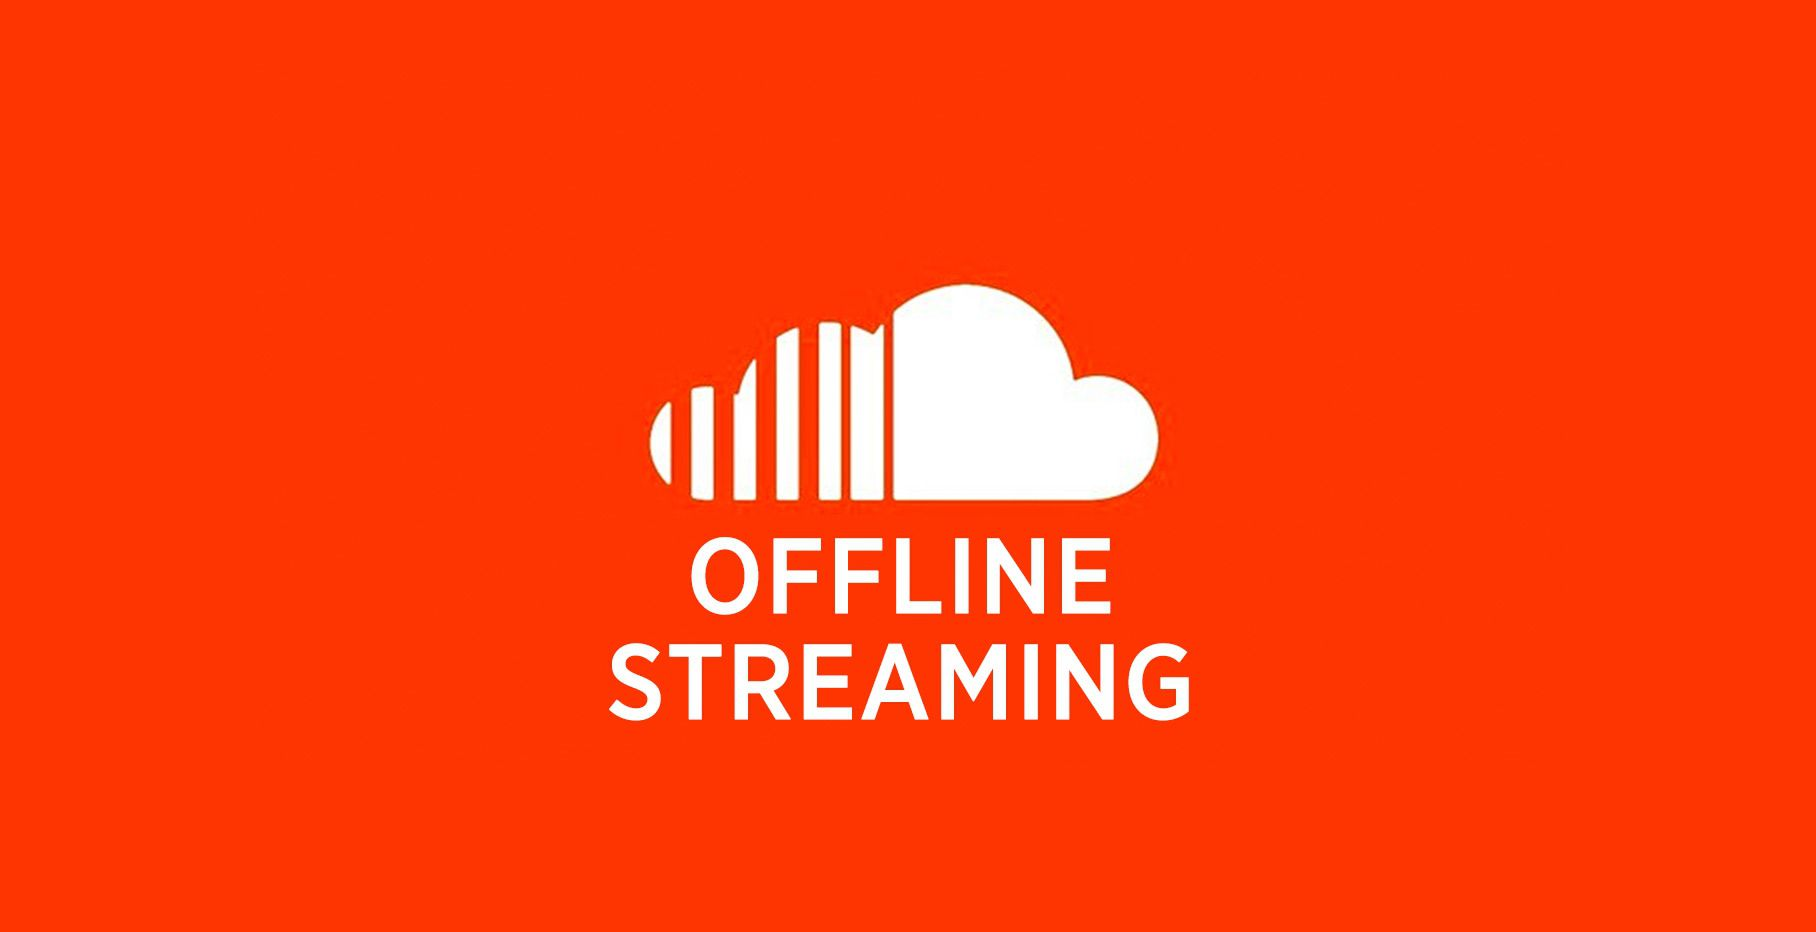 DJs can now stream offline from SoundCloud with new subscription